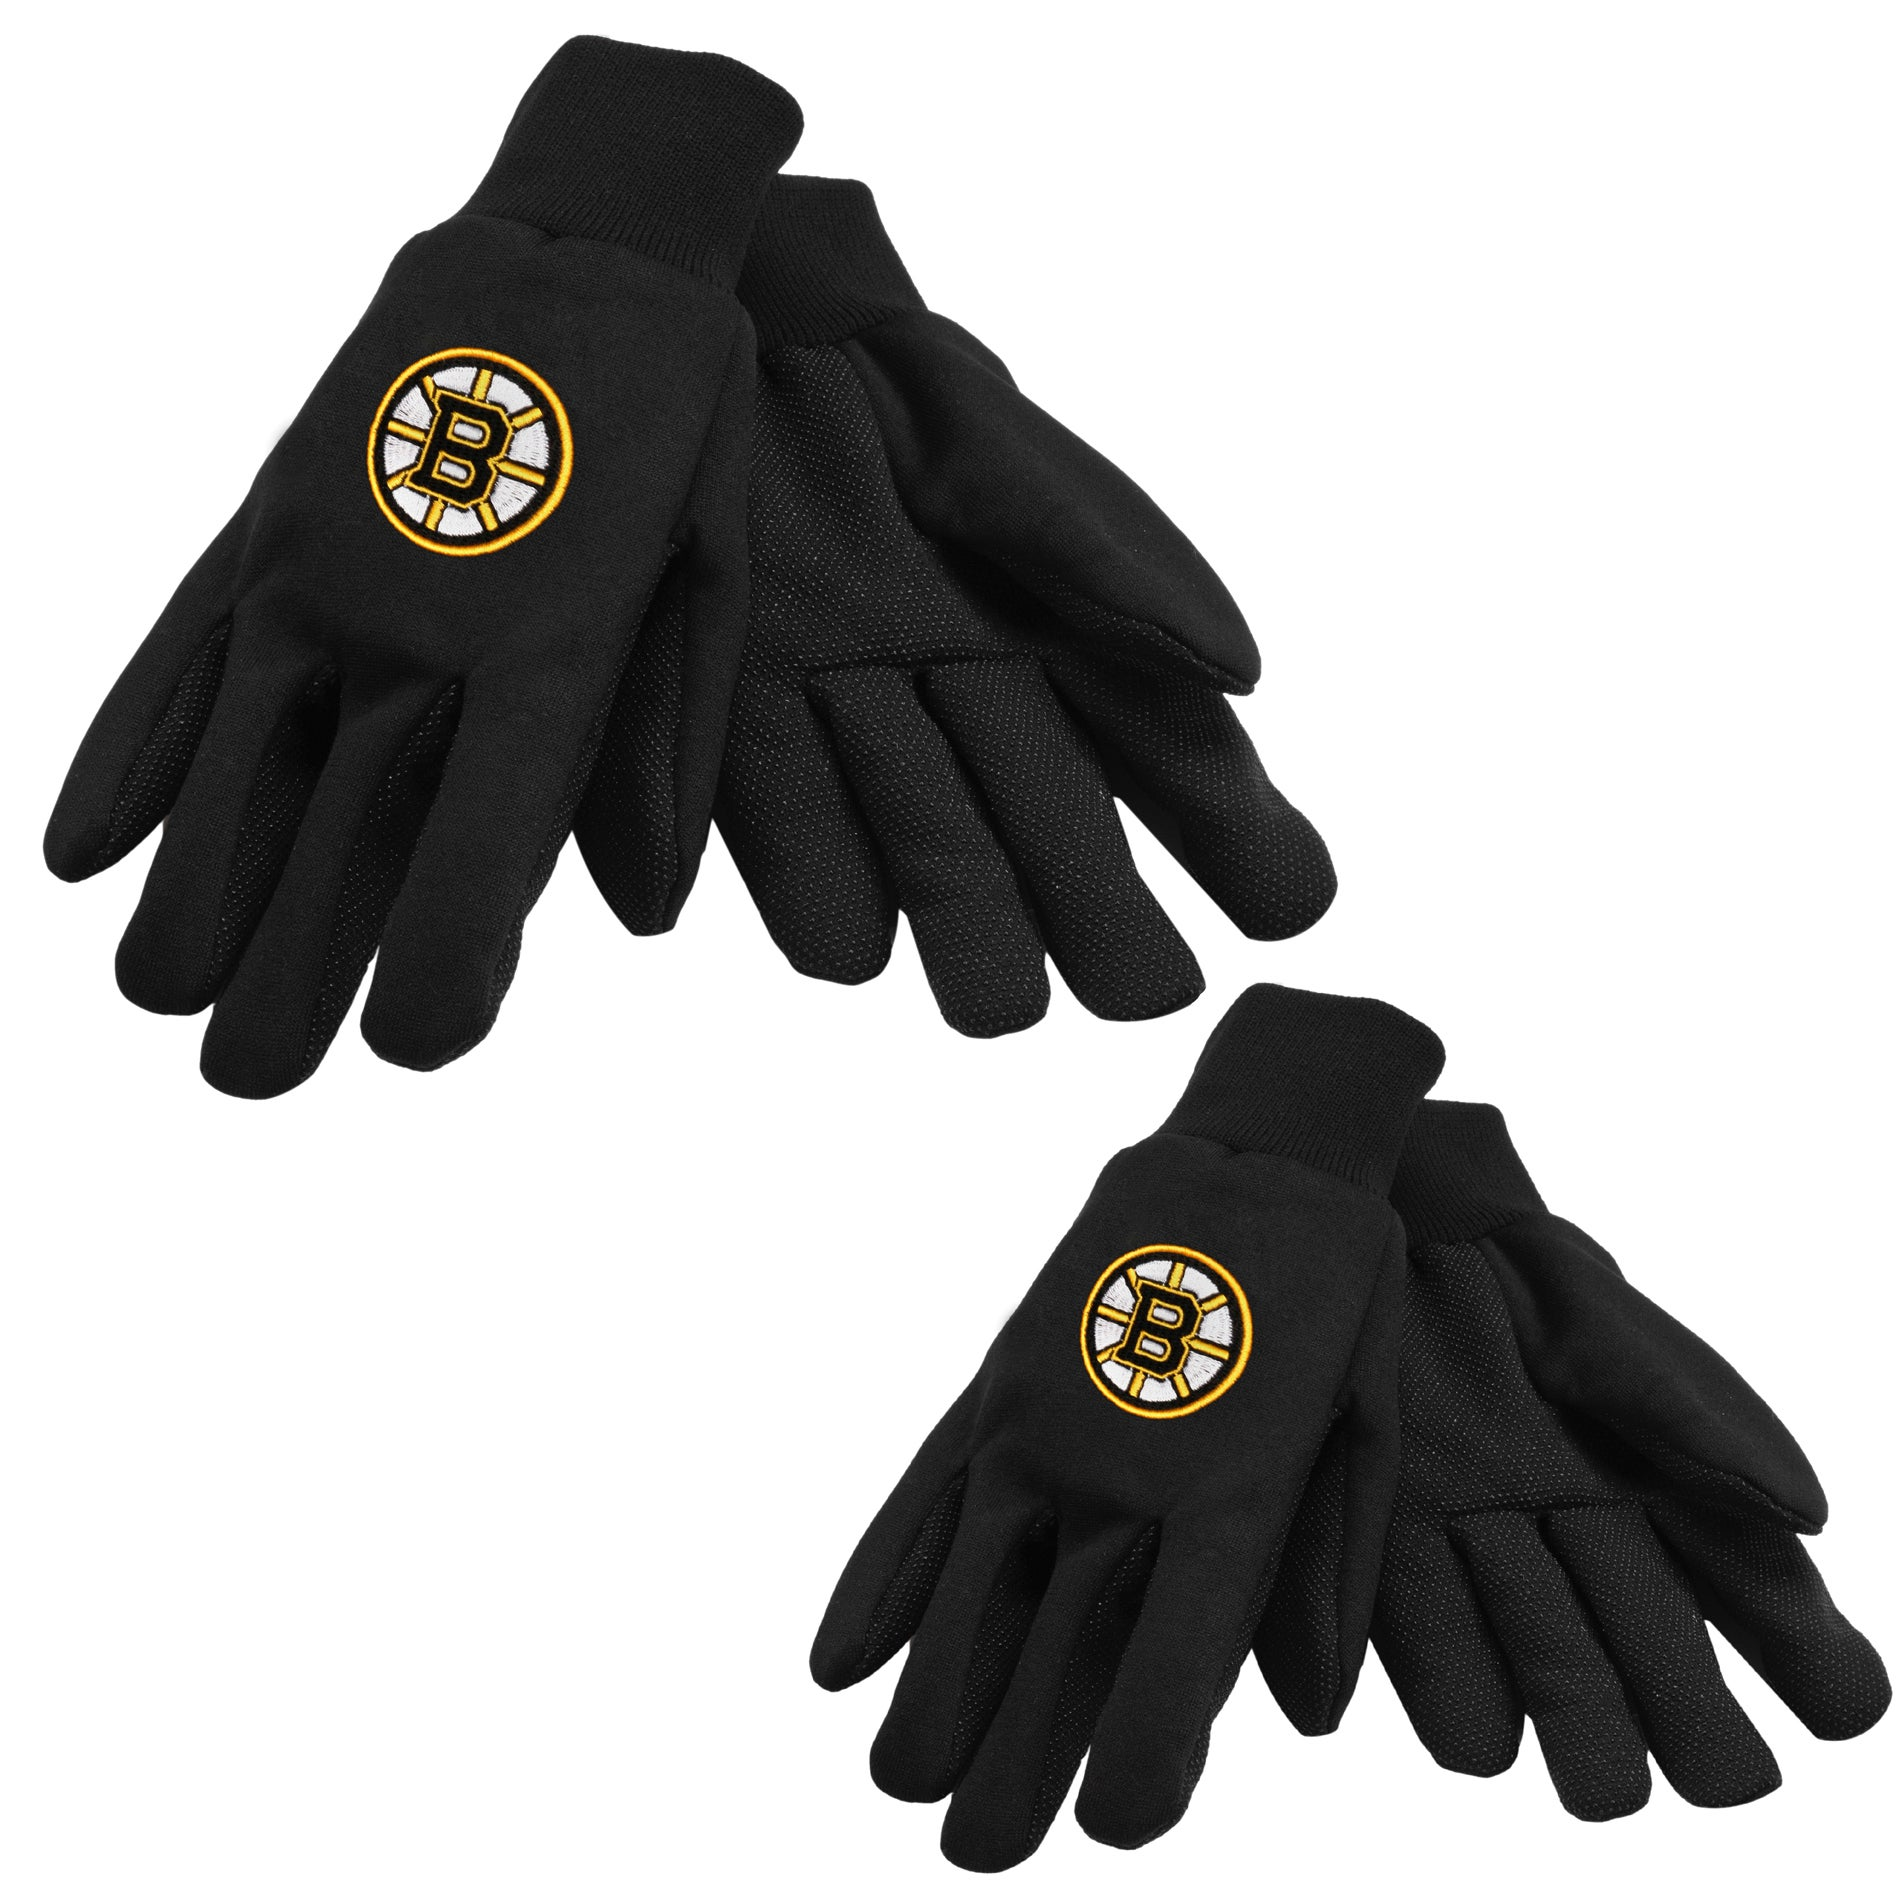 Boston Bruins Two-tone Work Gloves (Set of 2 Pair)